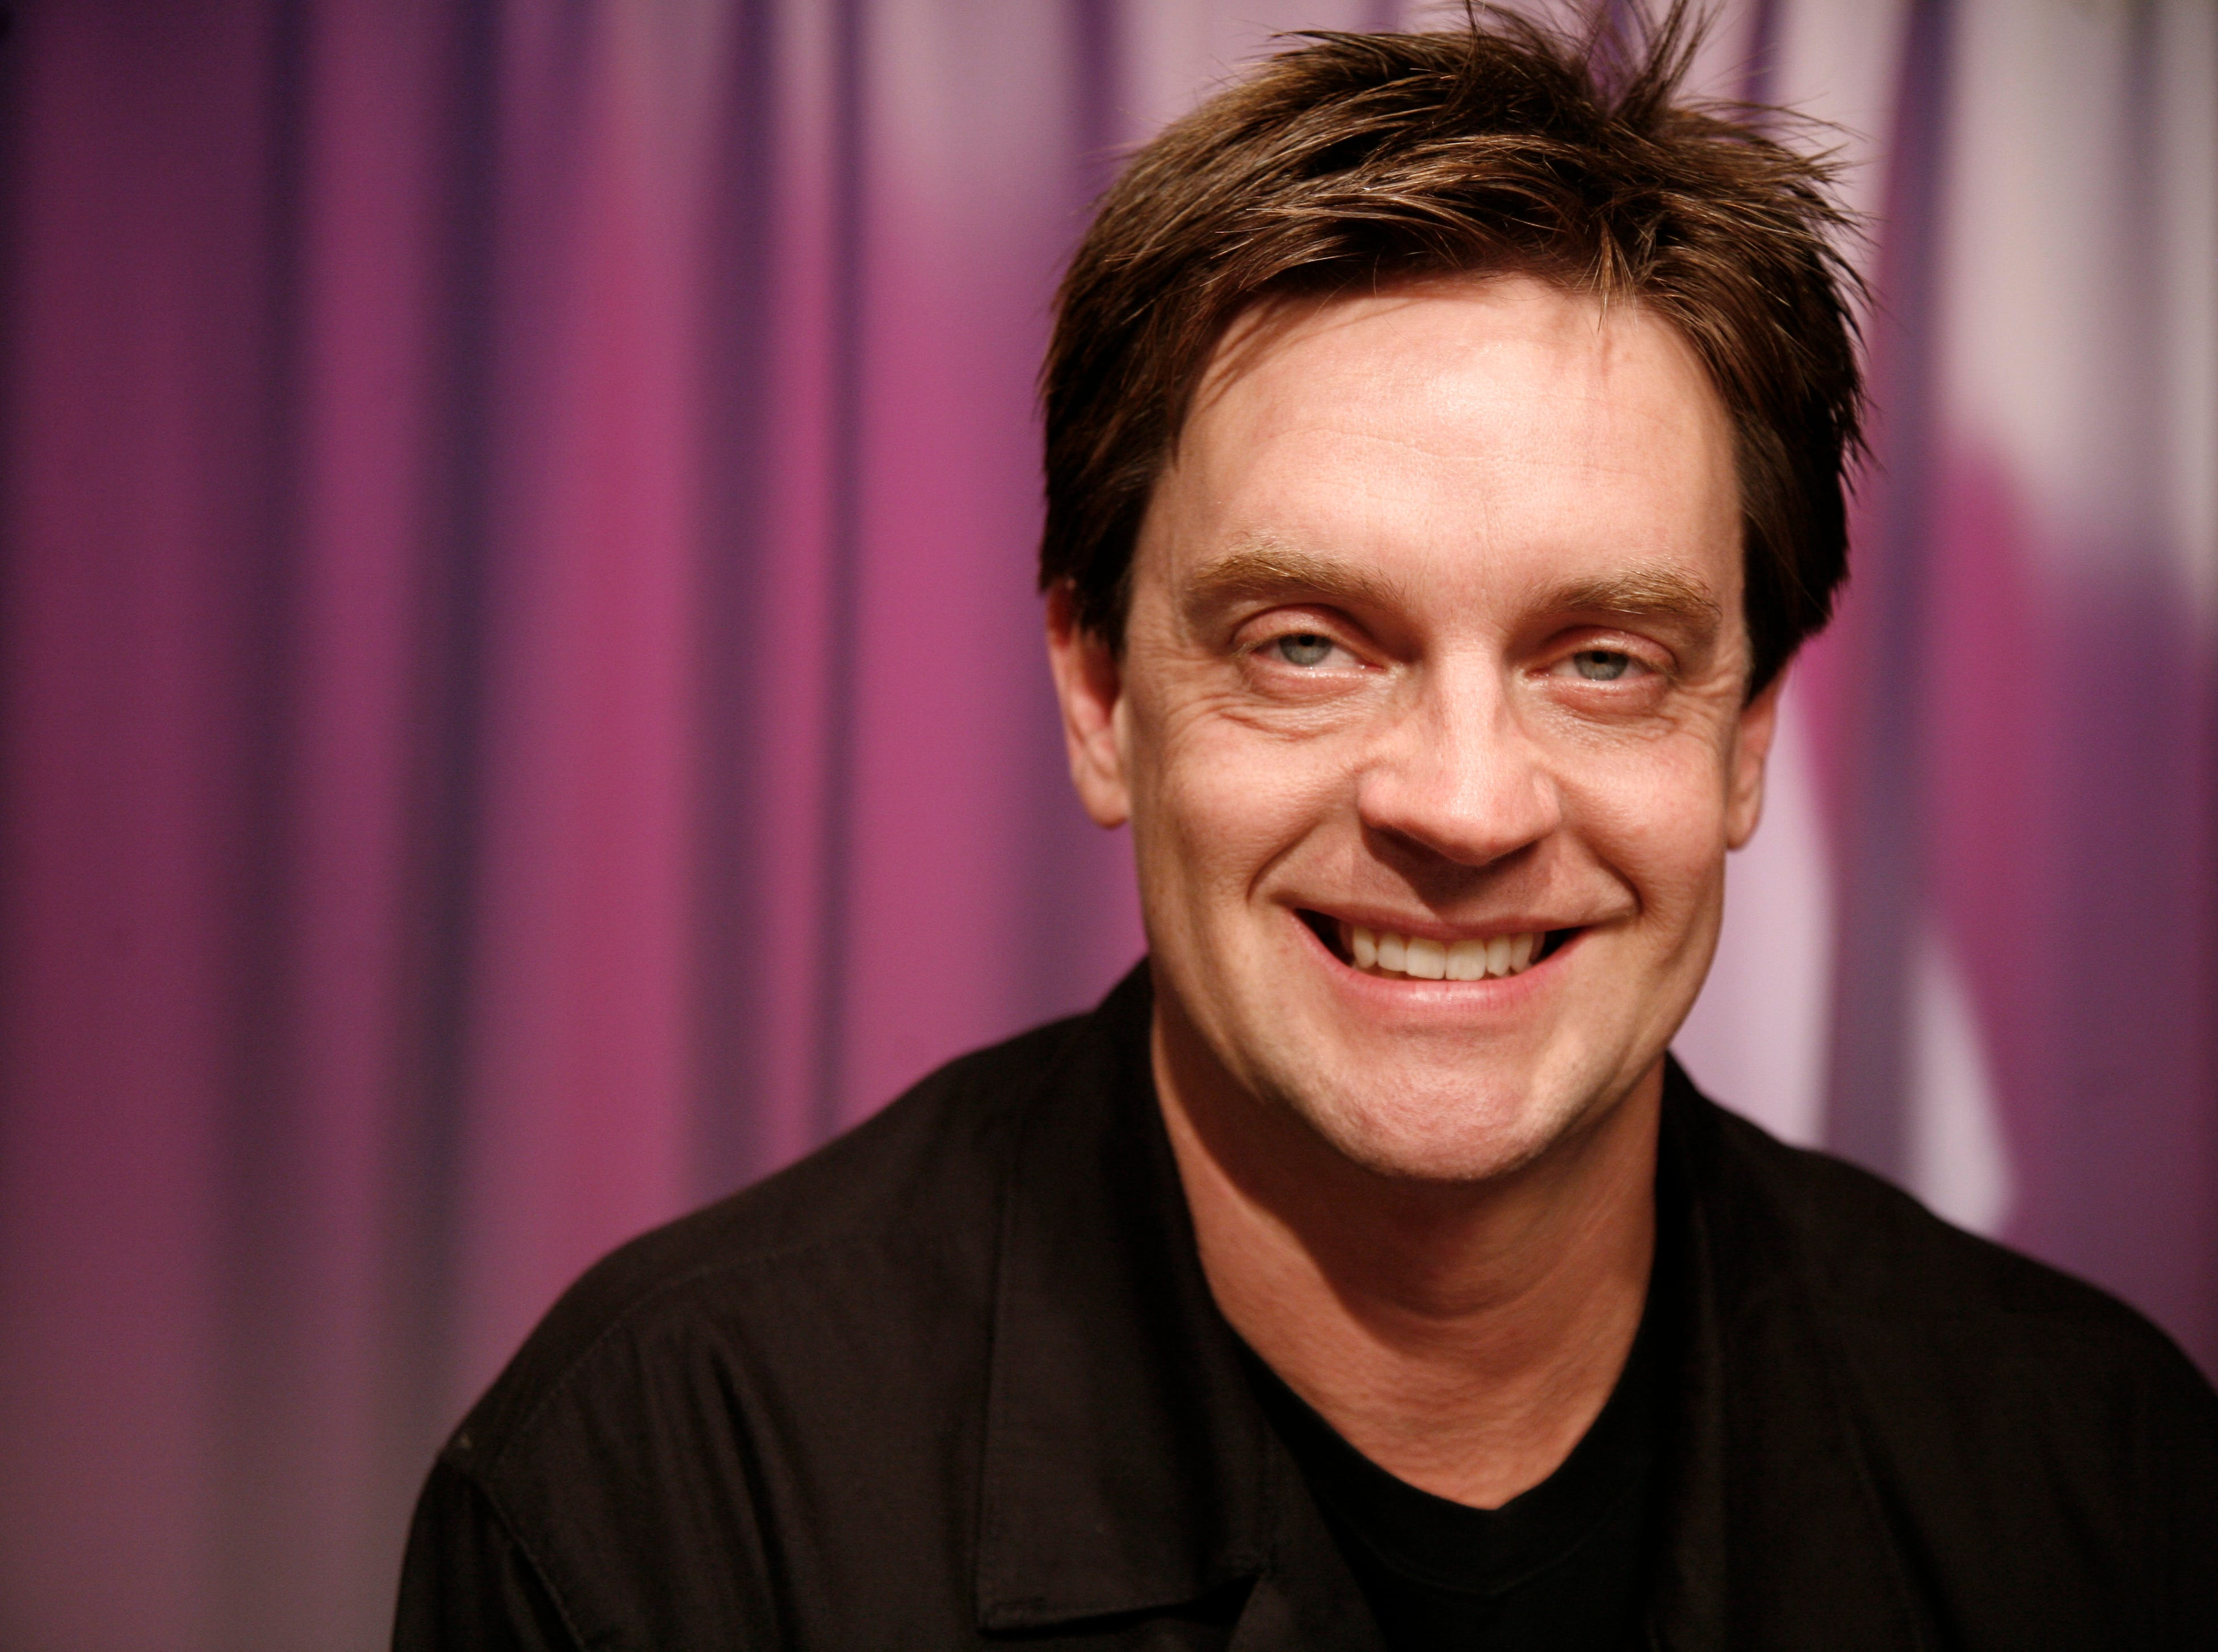 Comedy & heavy metal: Jim Breuer will make you laugh, then Metallica will make you headbang